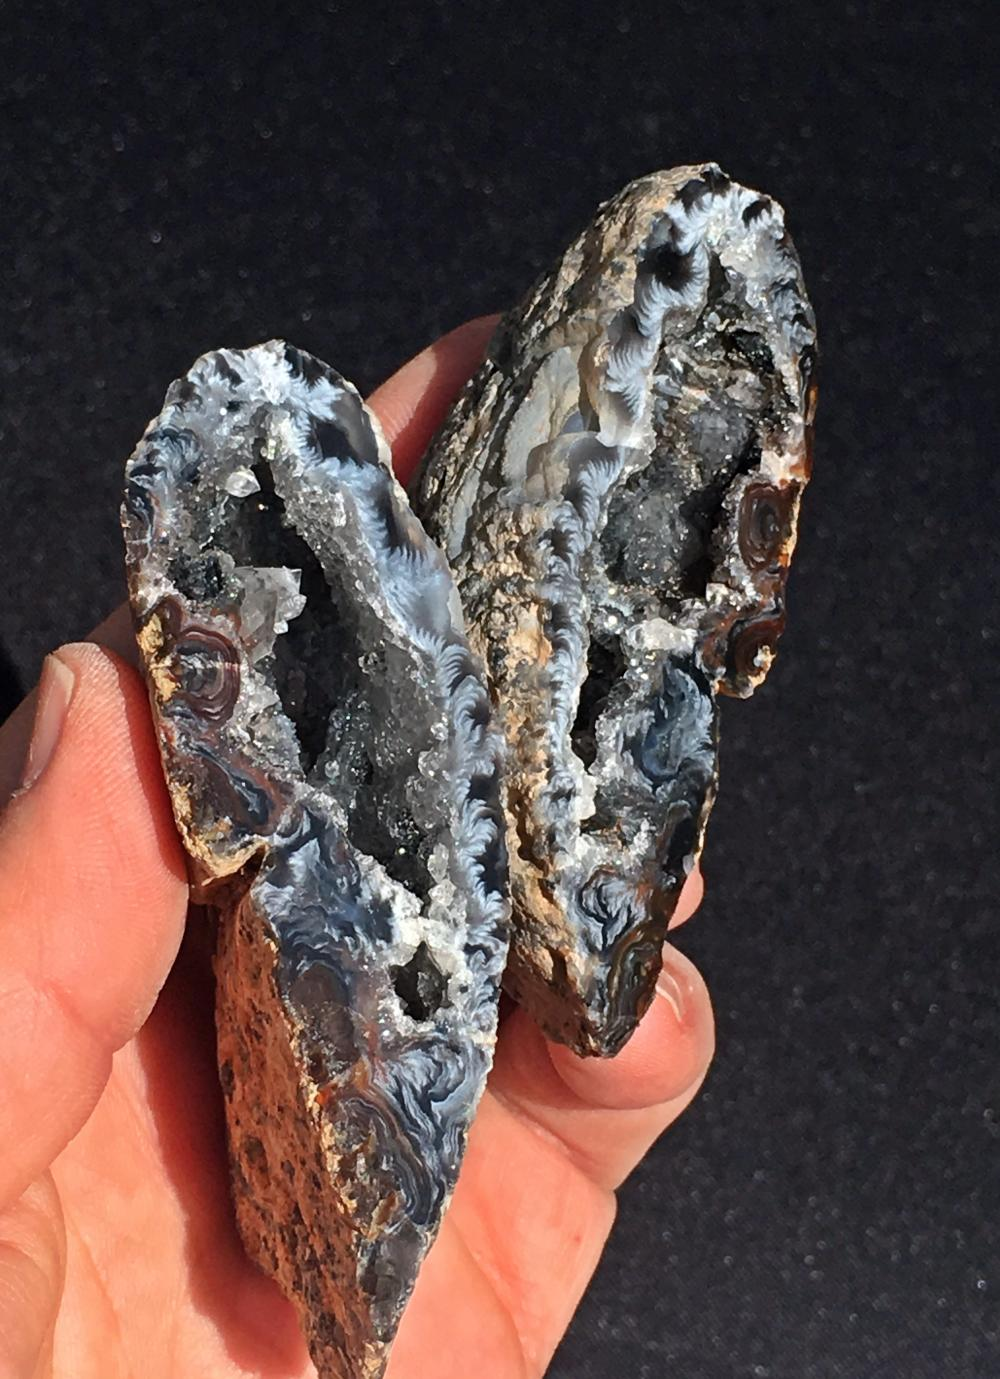 Lot 295: Geode, Rock, Crystal, Natural, Collectible, Mineral, Specimen